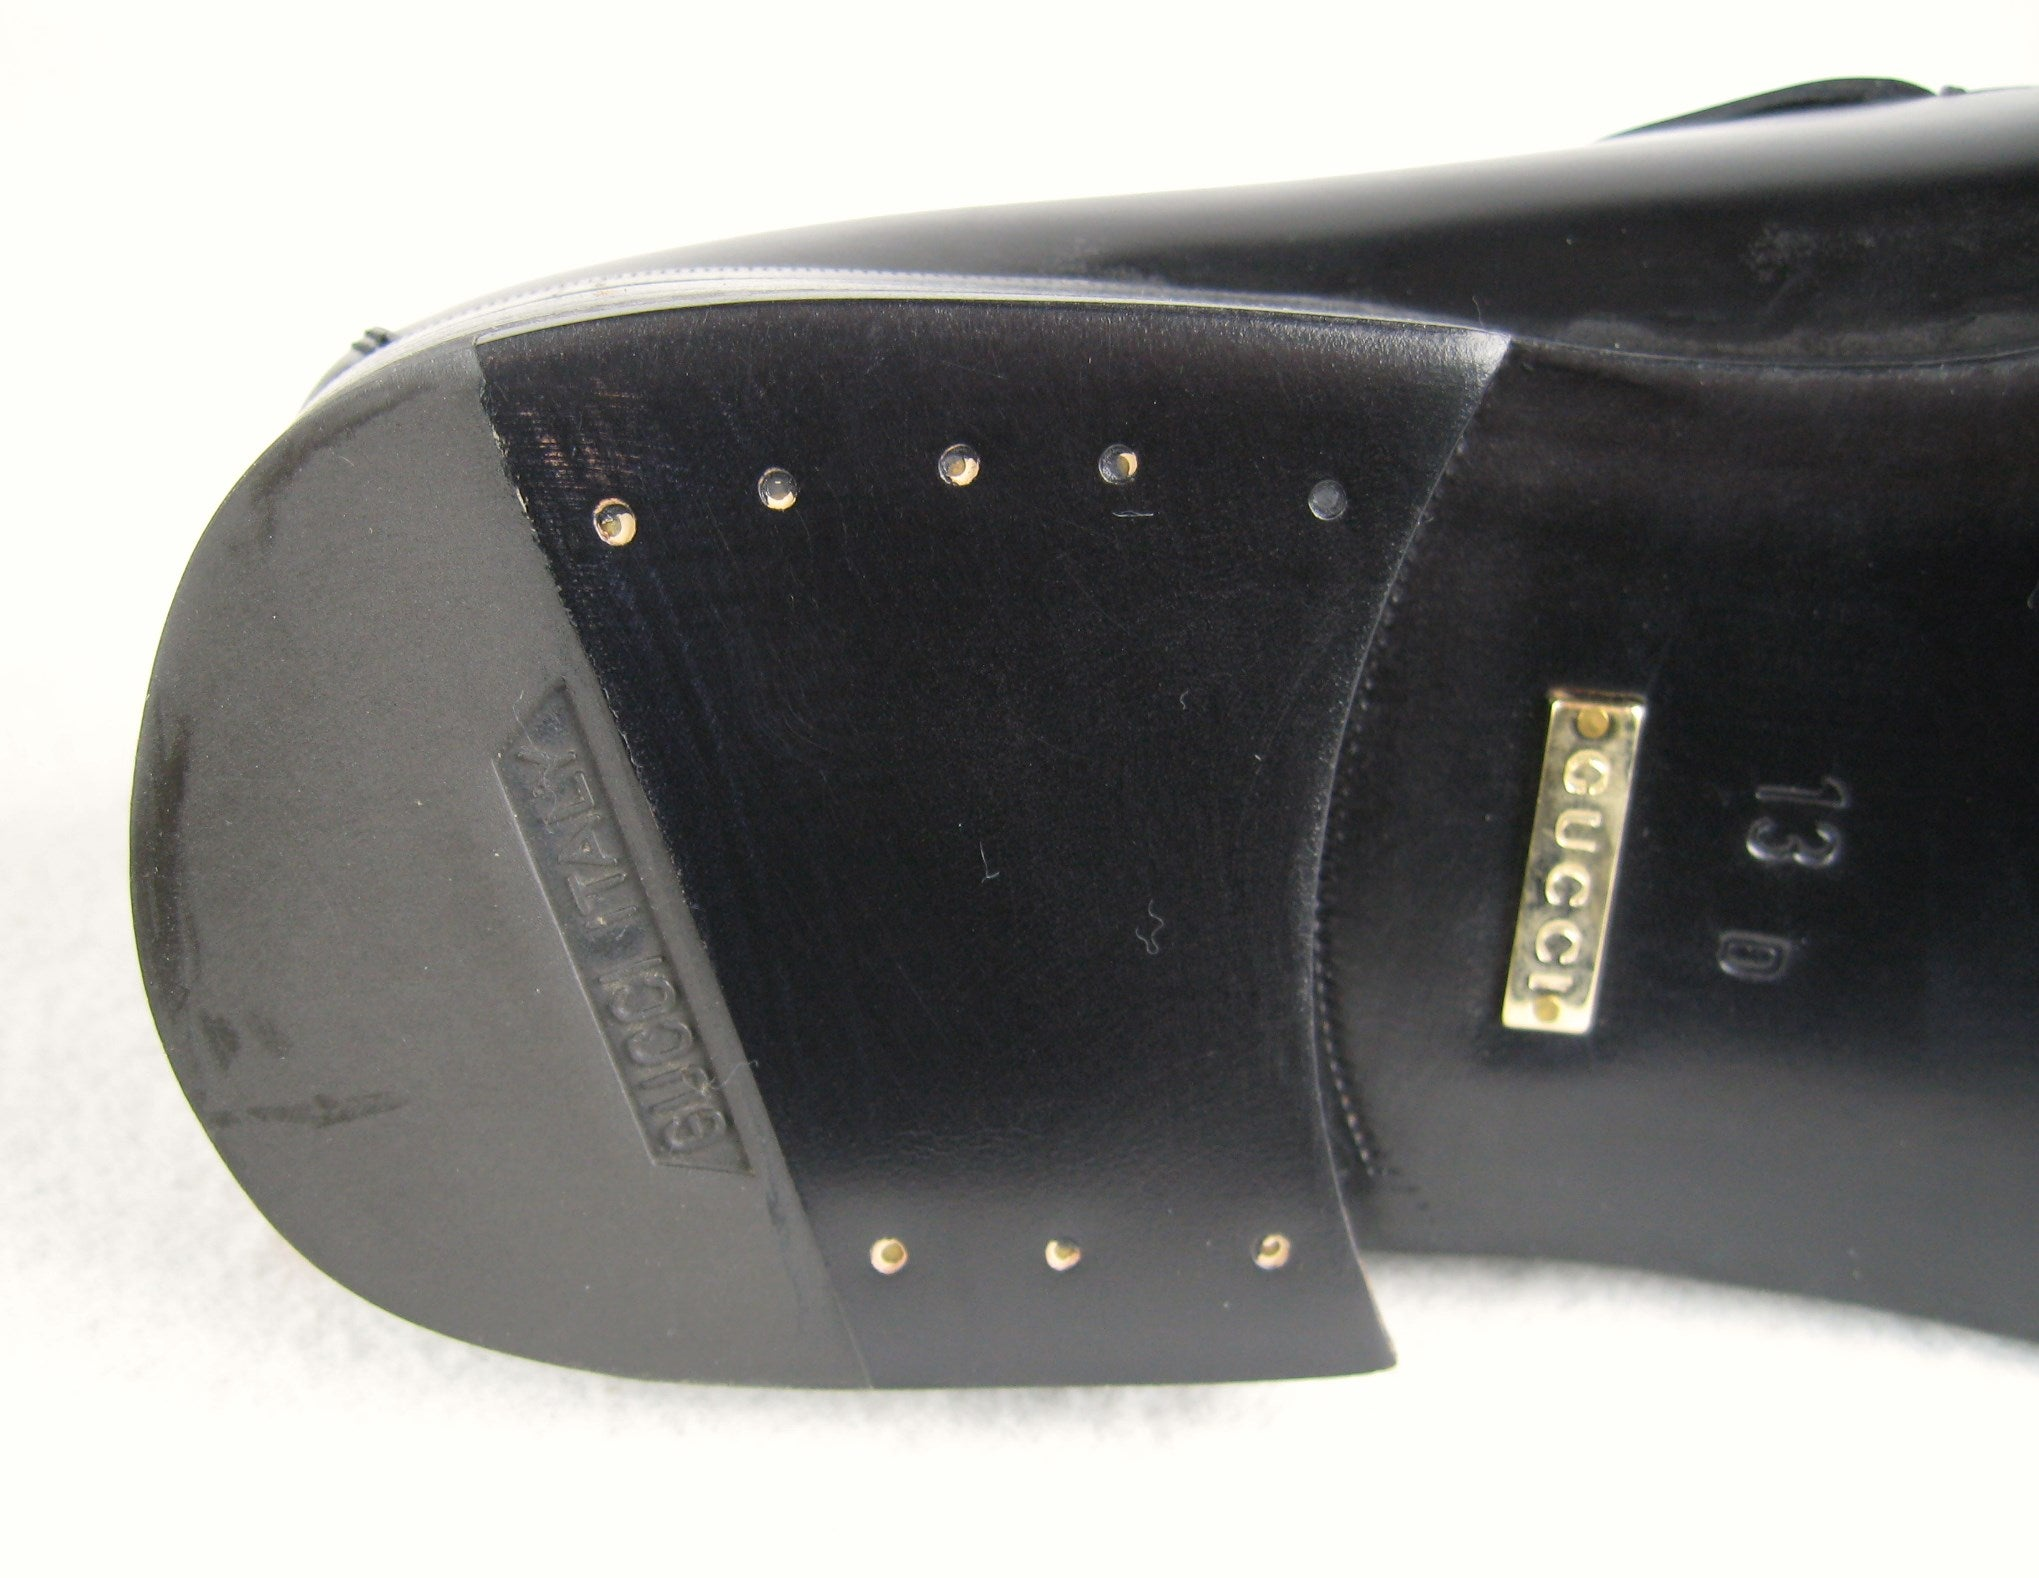 346ad673f1f GUCCI Size 13 Men s Leather Nero Black Slip On Loafers Shoes NEW For Sale  at 1stdibs